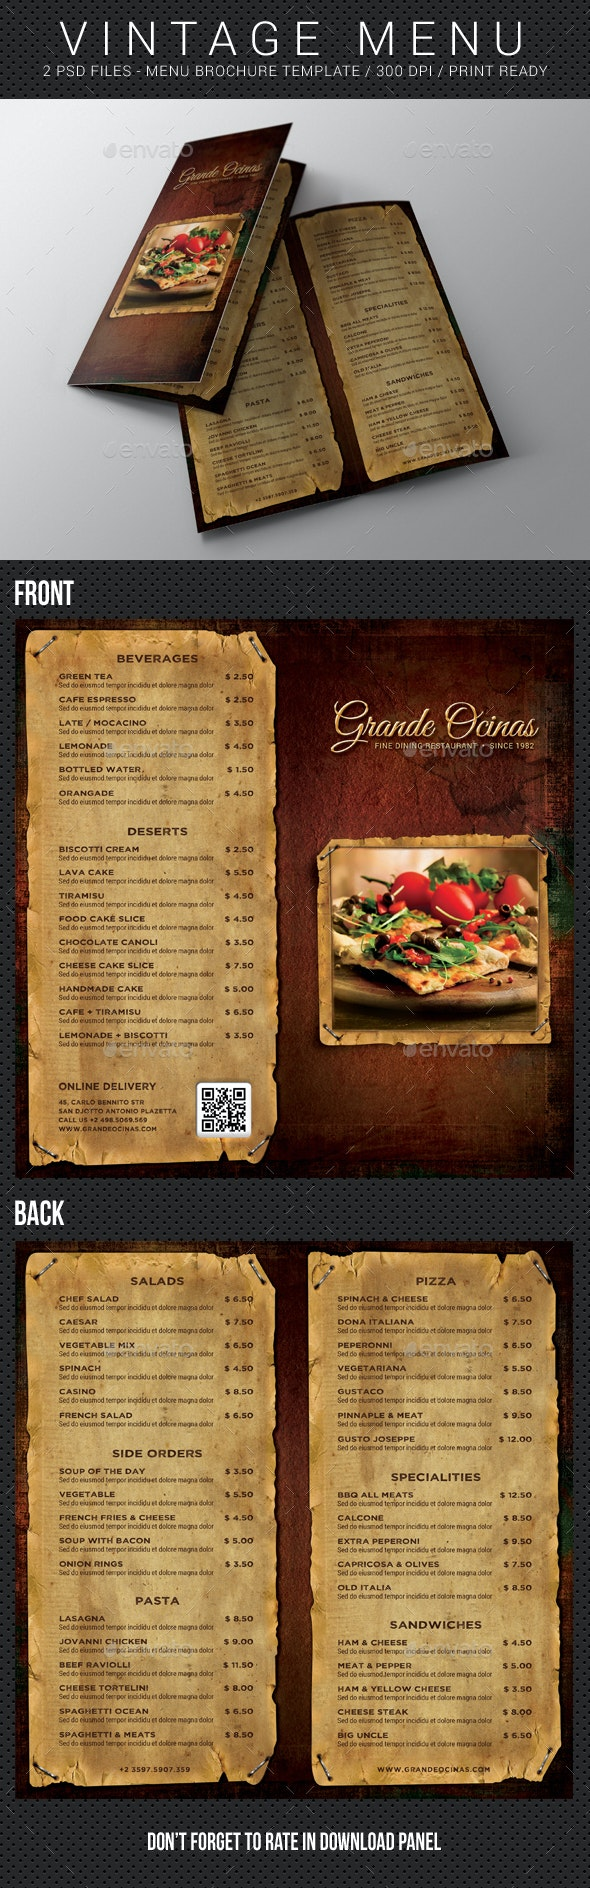 Vintage Menu Brochure - Food Menus Print Templates